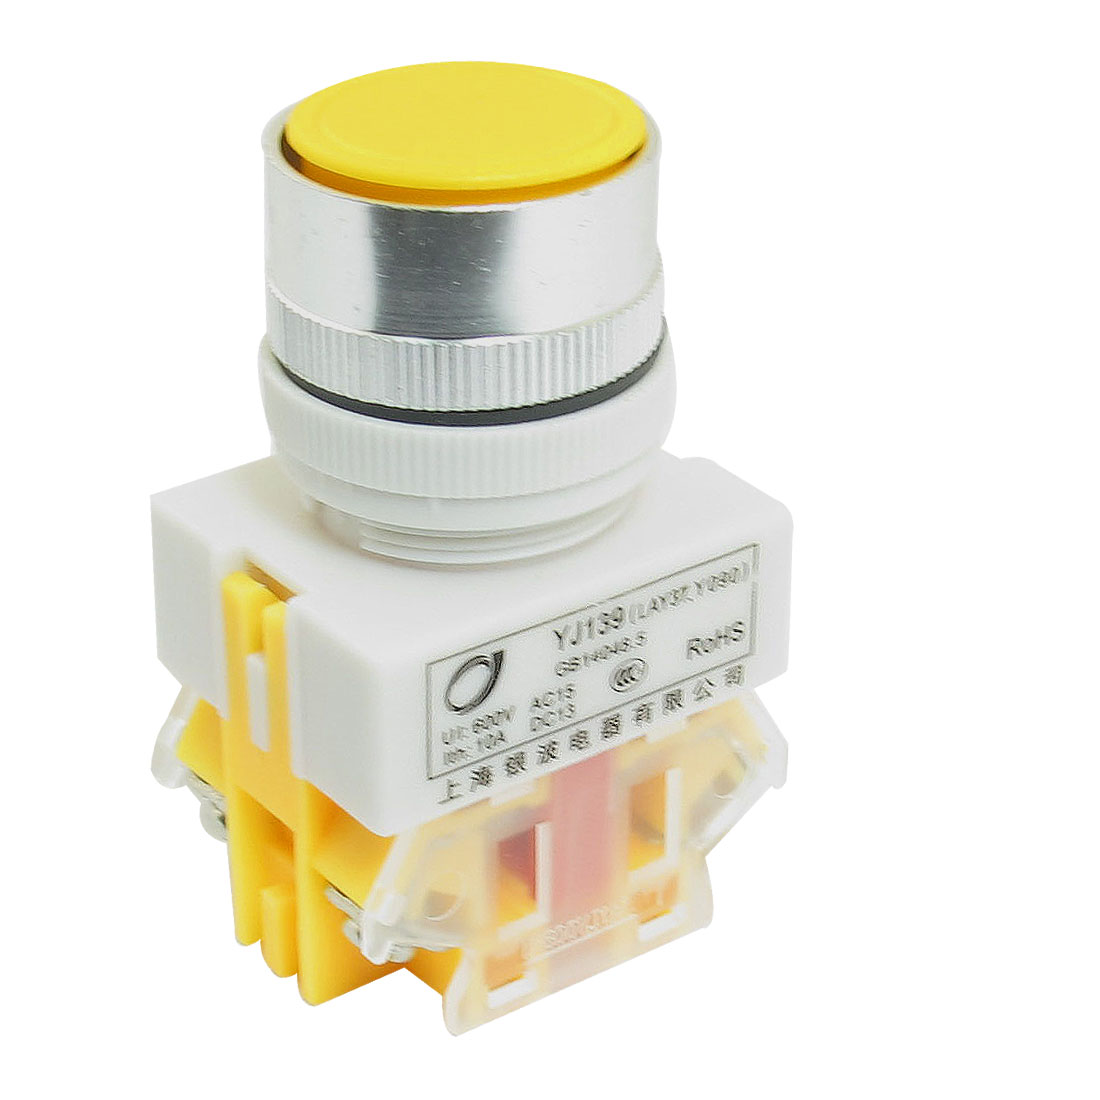 10A 600V DPST NO NC Style Momentary Yellow Flat Push Button Pushbutton Switch